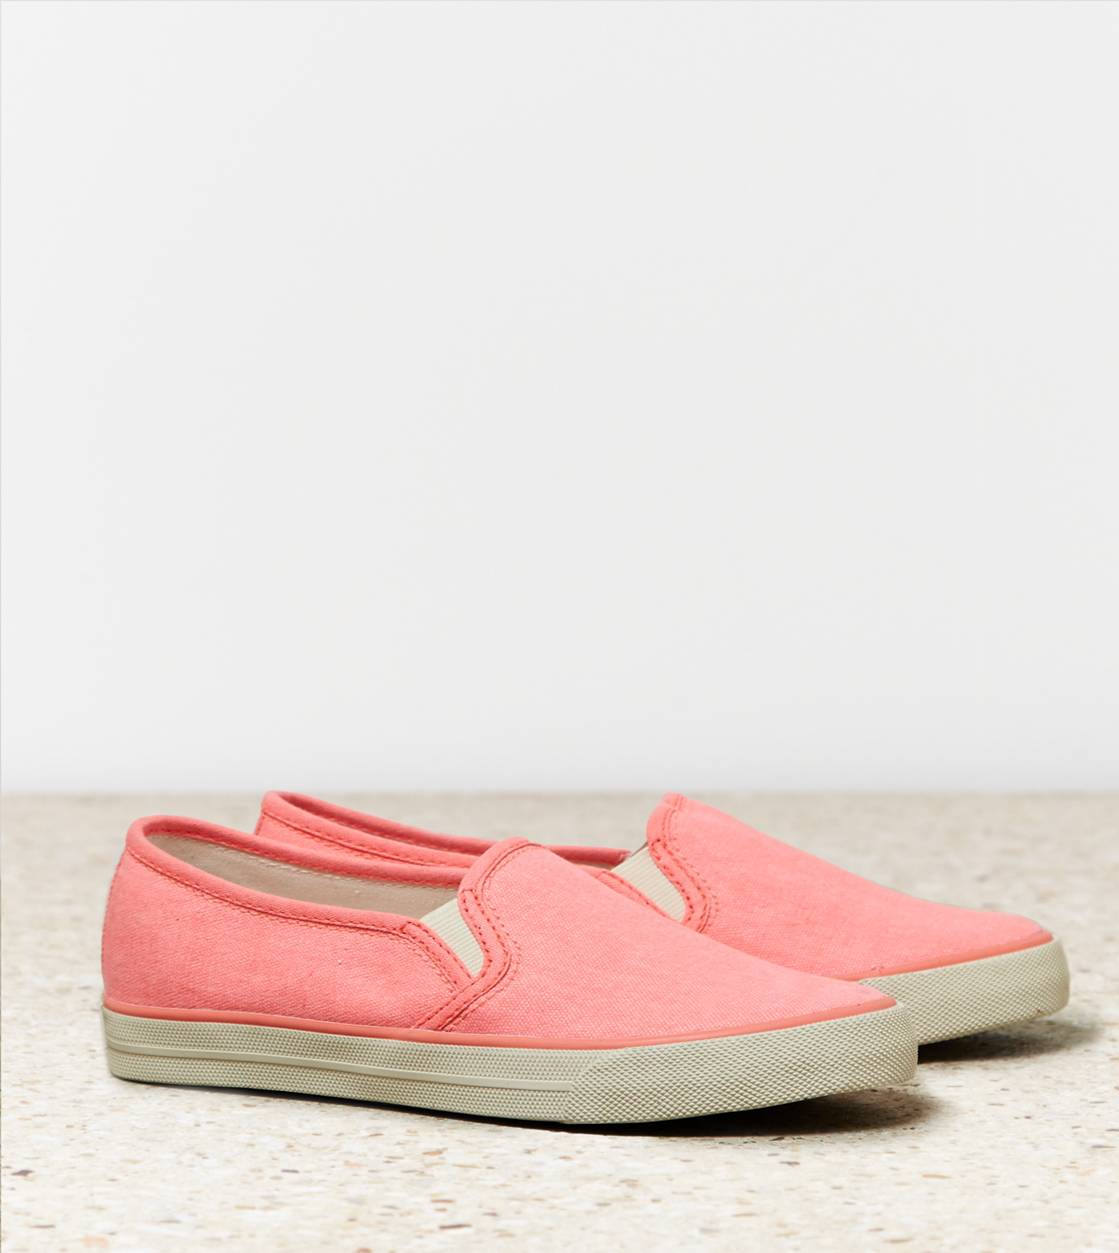 Knockout Pink AEO Slip-On Sneaker